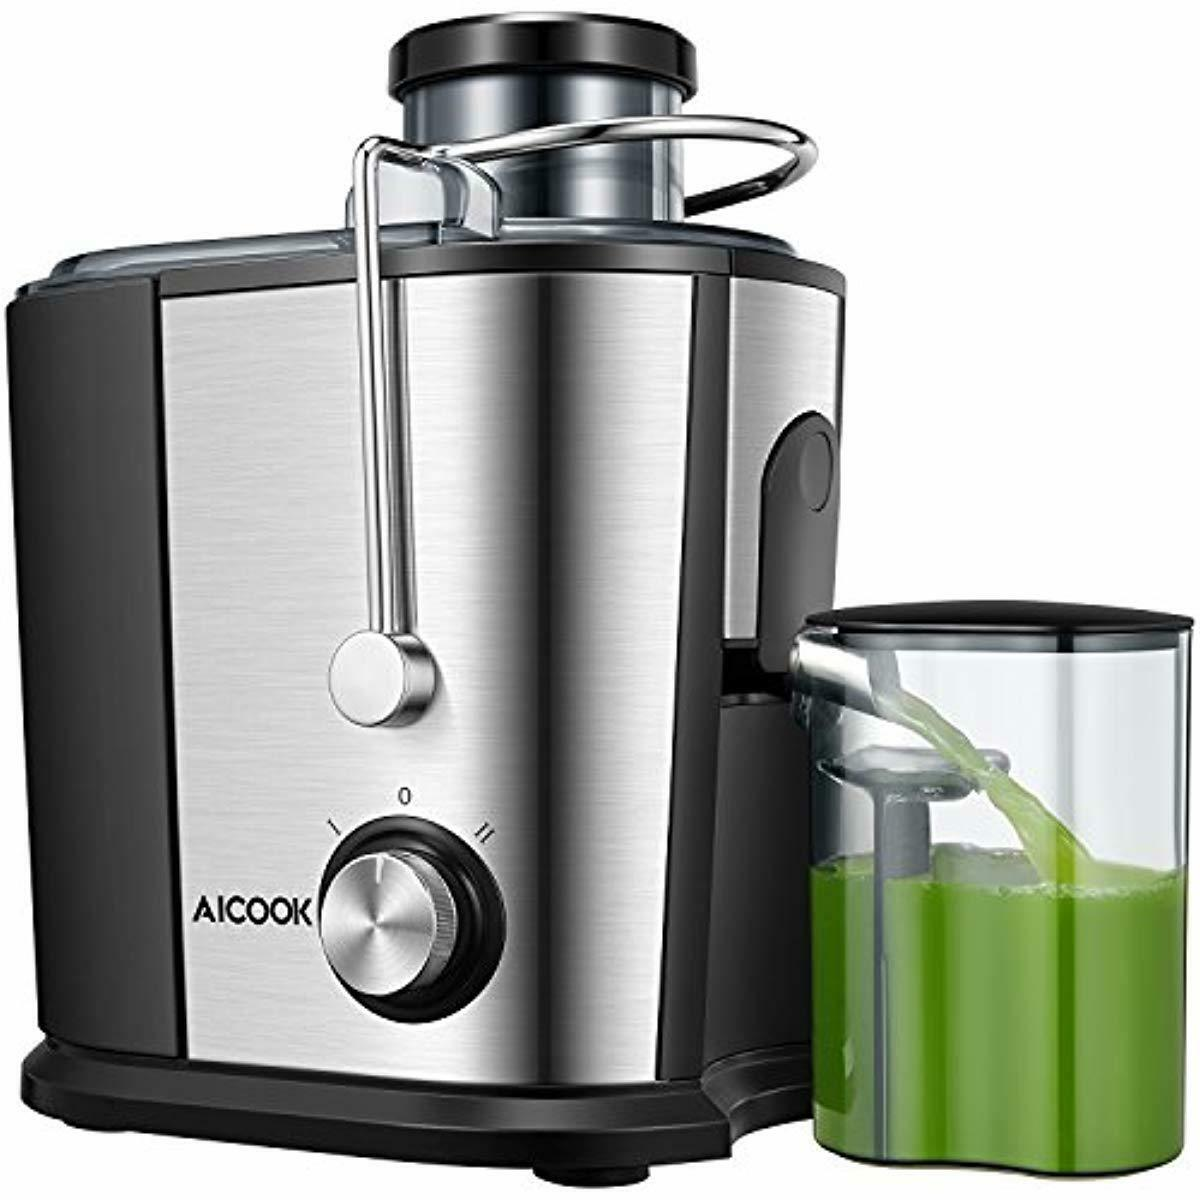 juicer juice extractor aicok wide mouth centrifugal